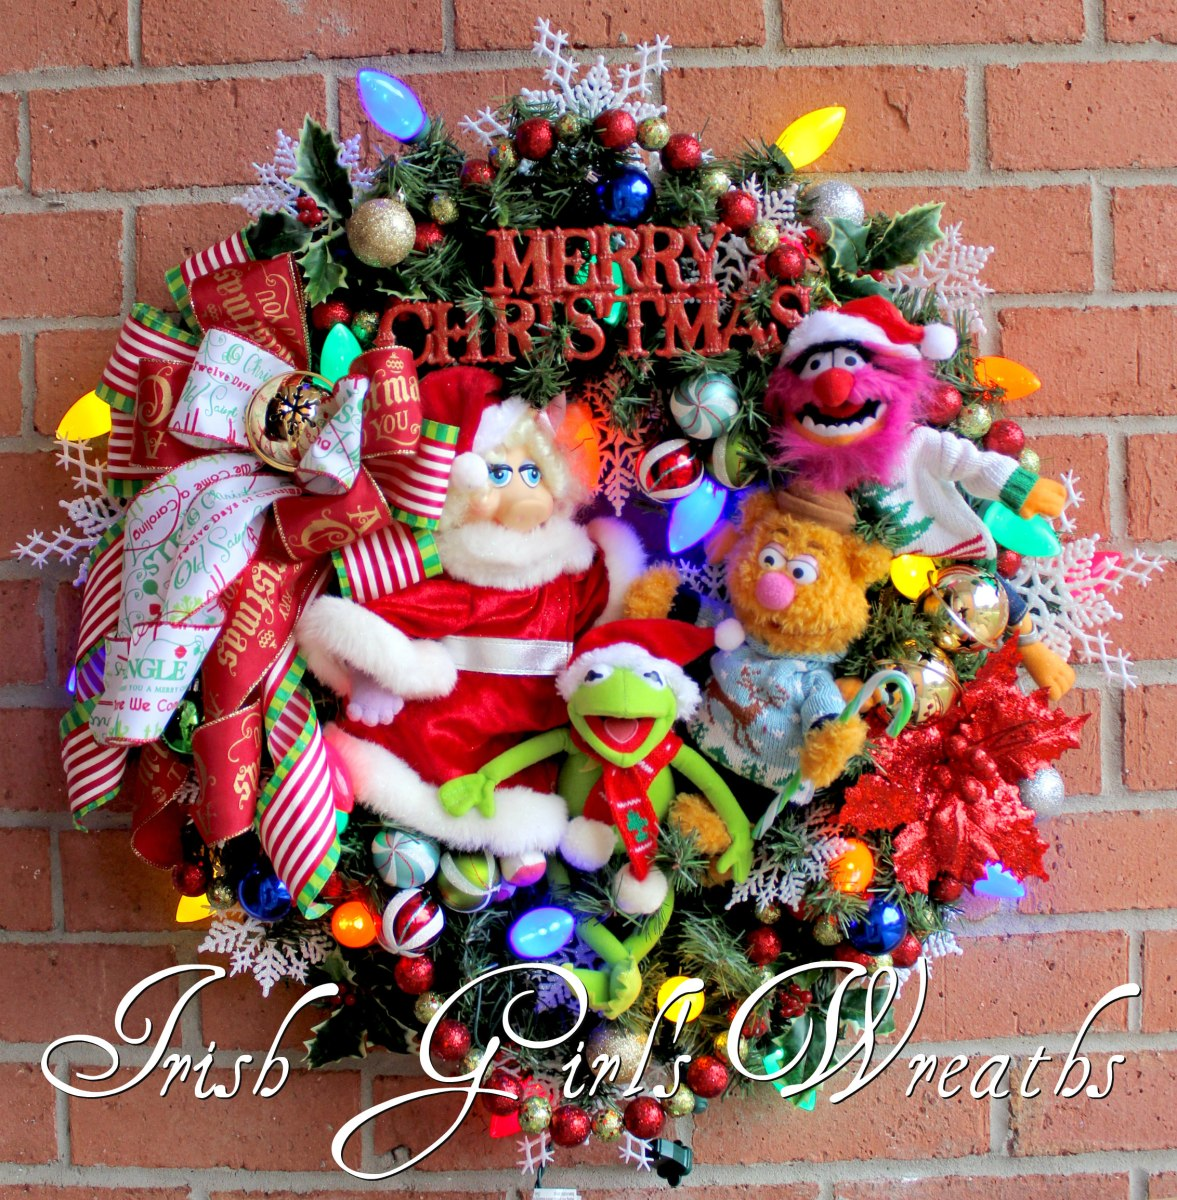 24 Inch Artificial Christmas Wreaths